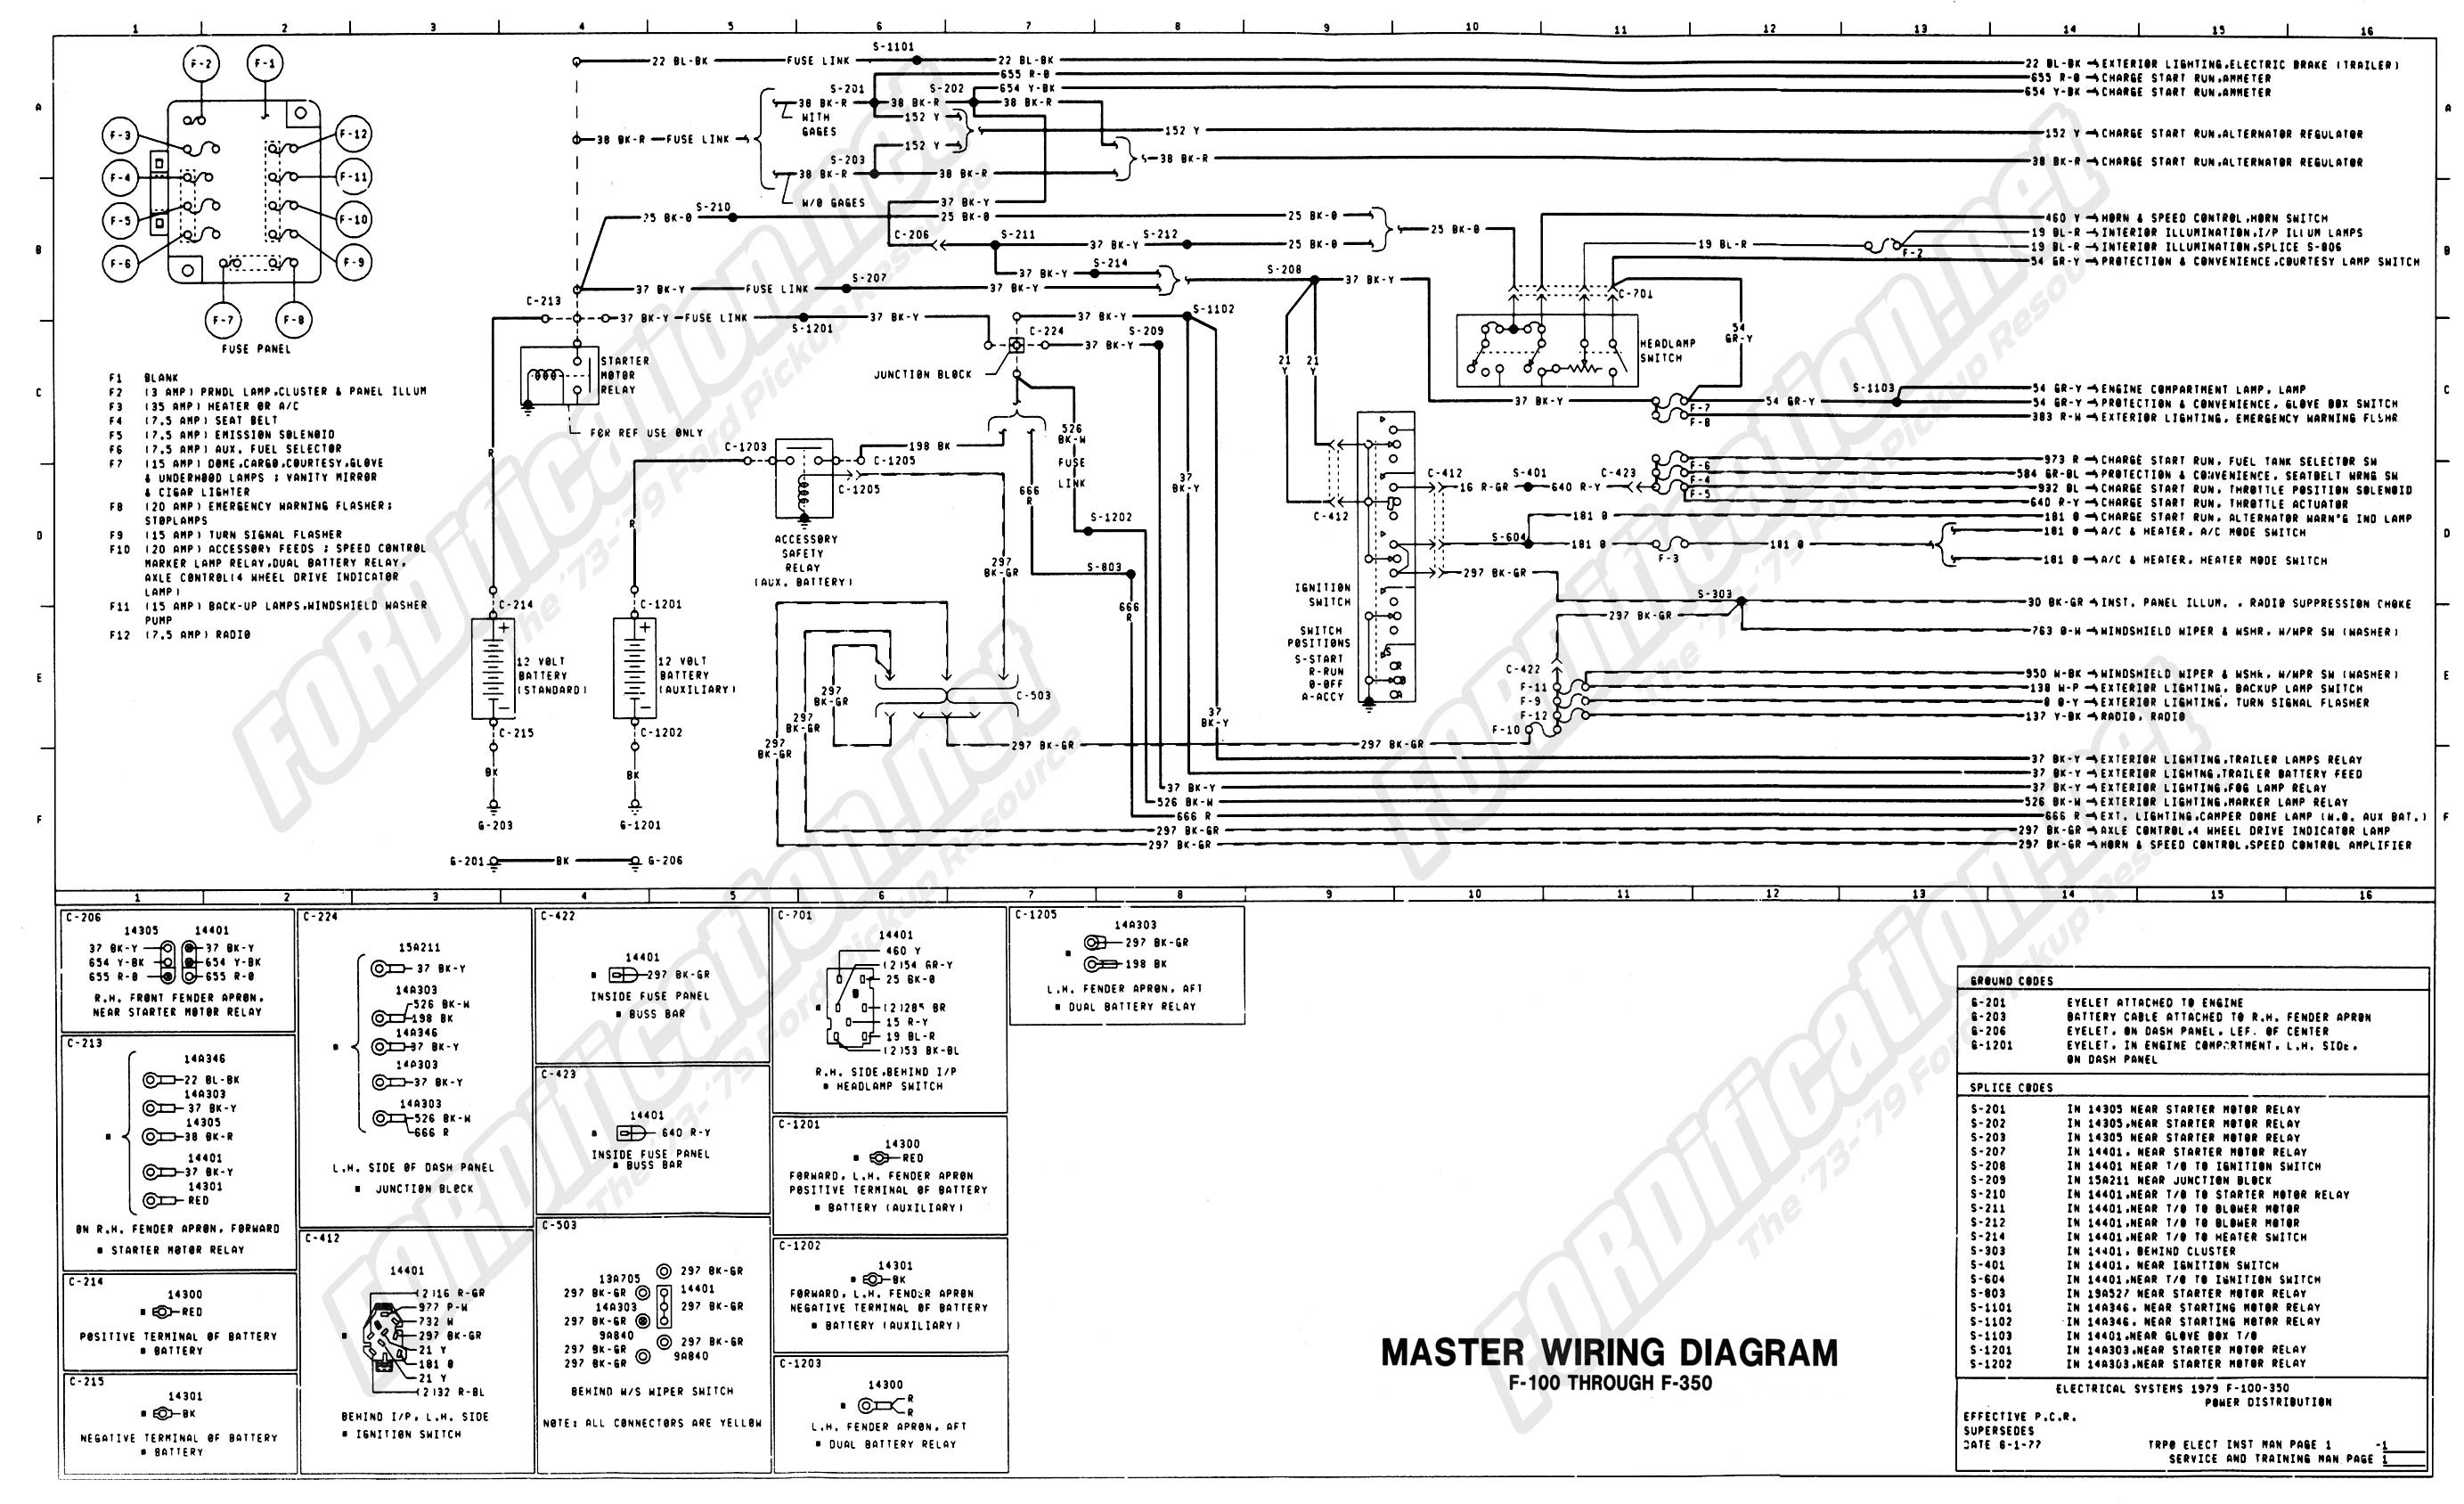 Ford 4 2 Engine Diagram 1973 1979 ford Truck Wiring Diagrams & Schematics fordification Of Ford 4 2 Engine Diagram